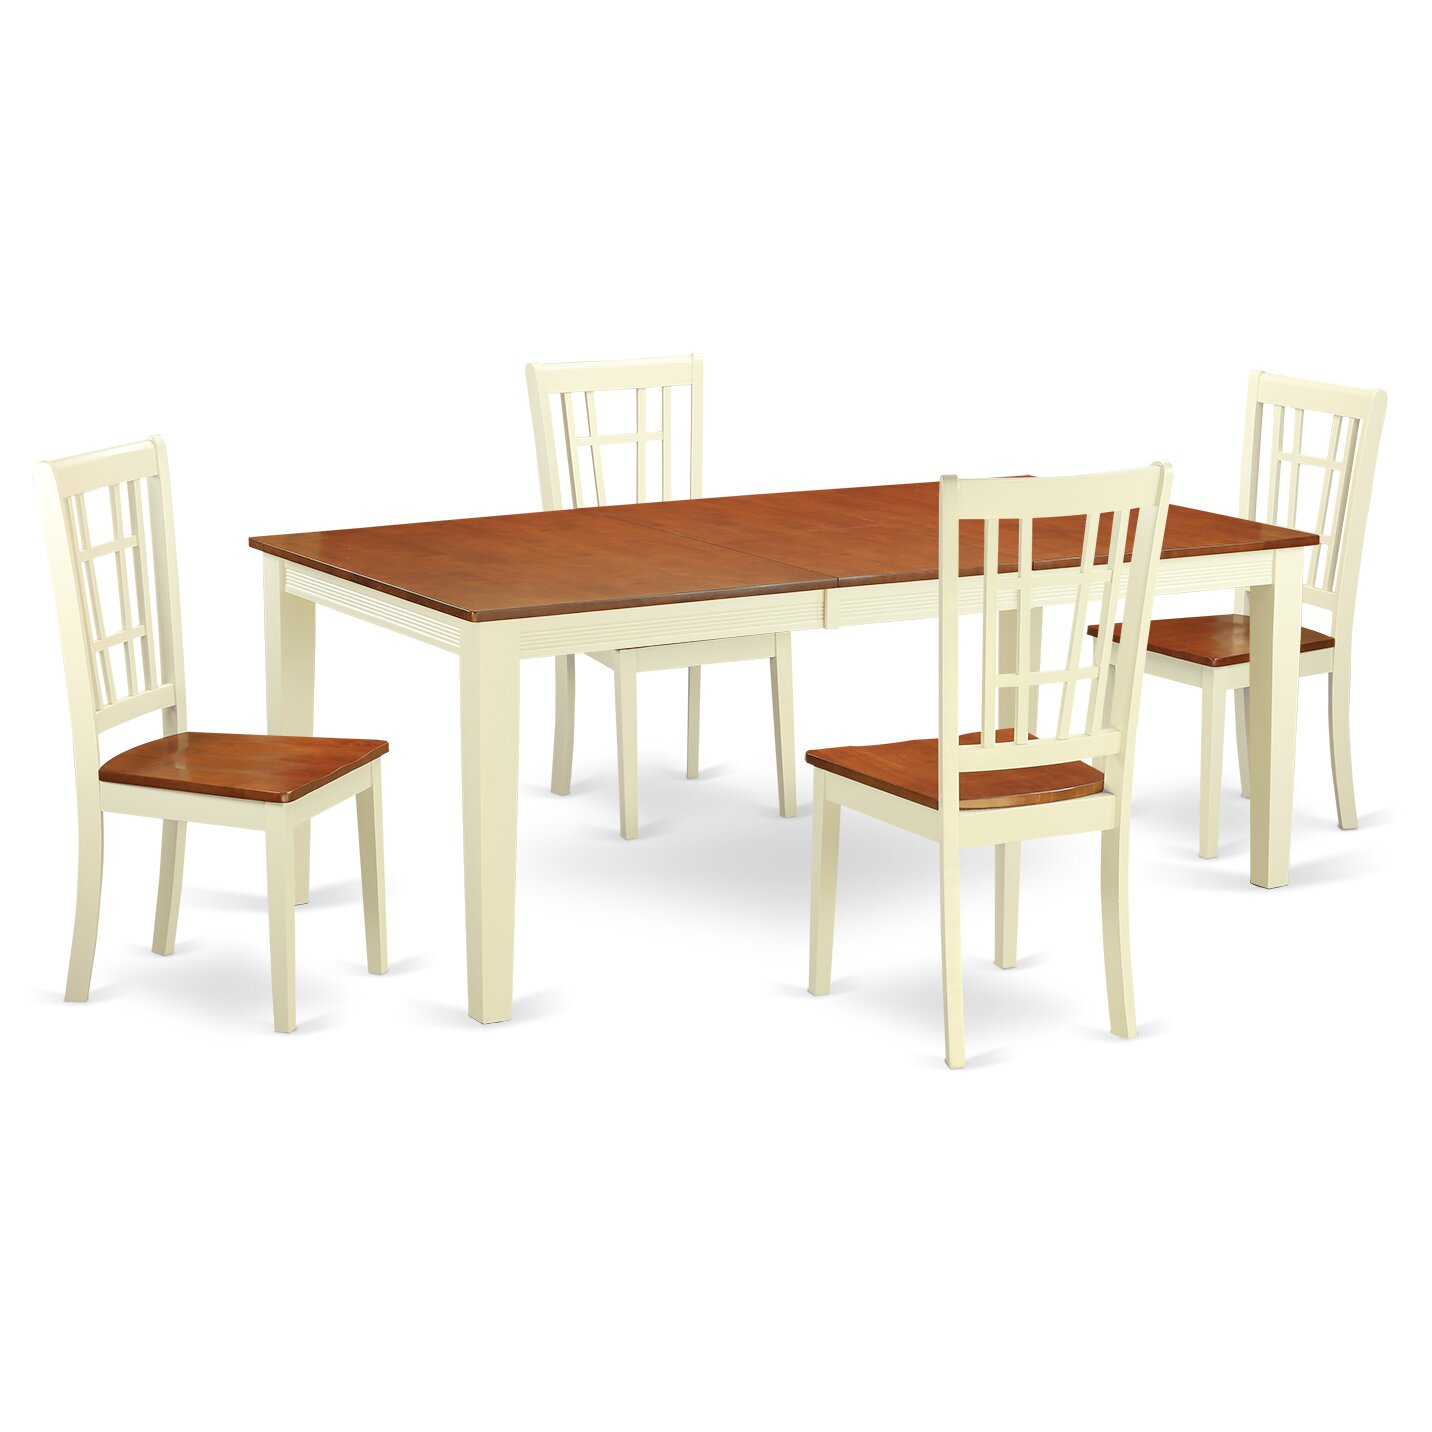 East west quincy 5 piece dining set wayfair for Kitchen dining furniture